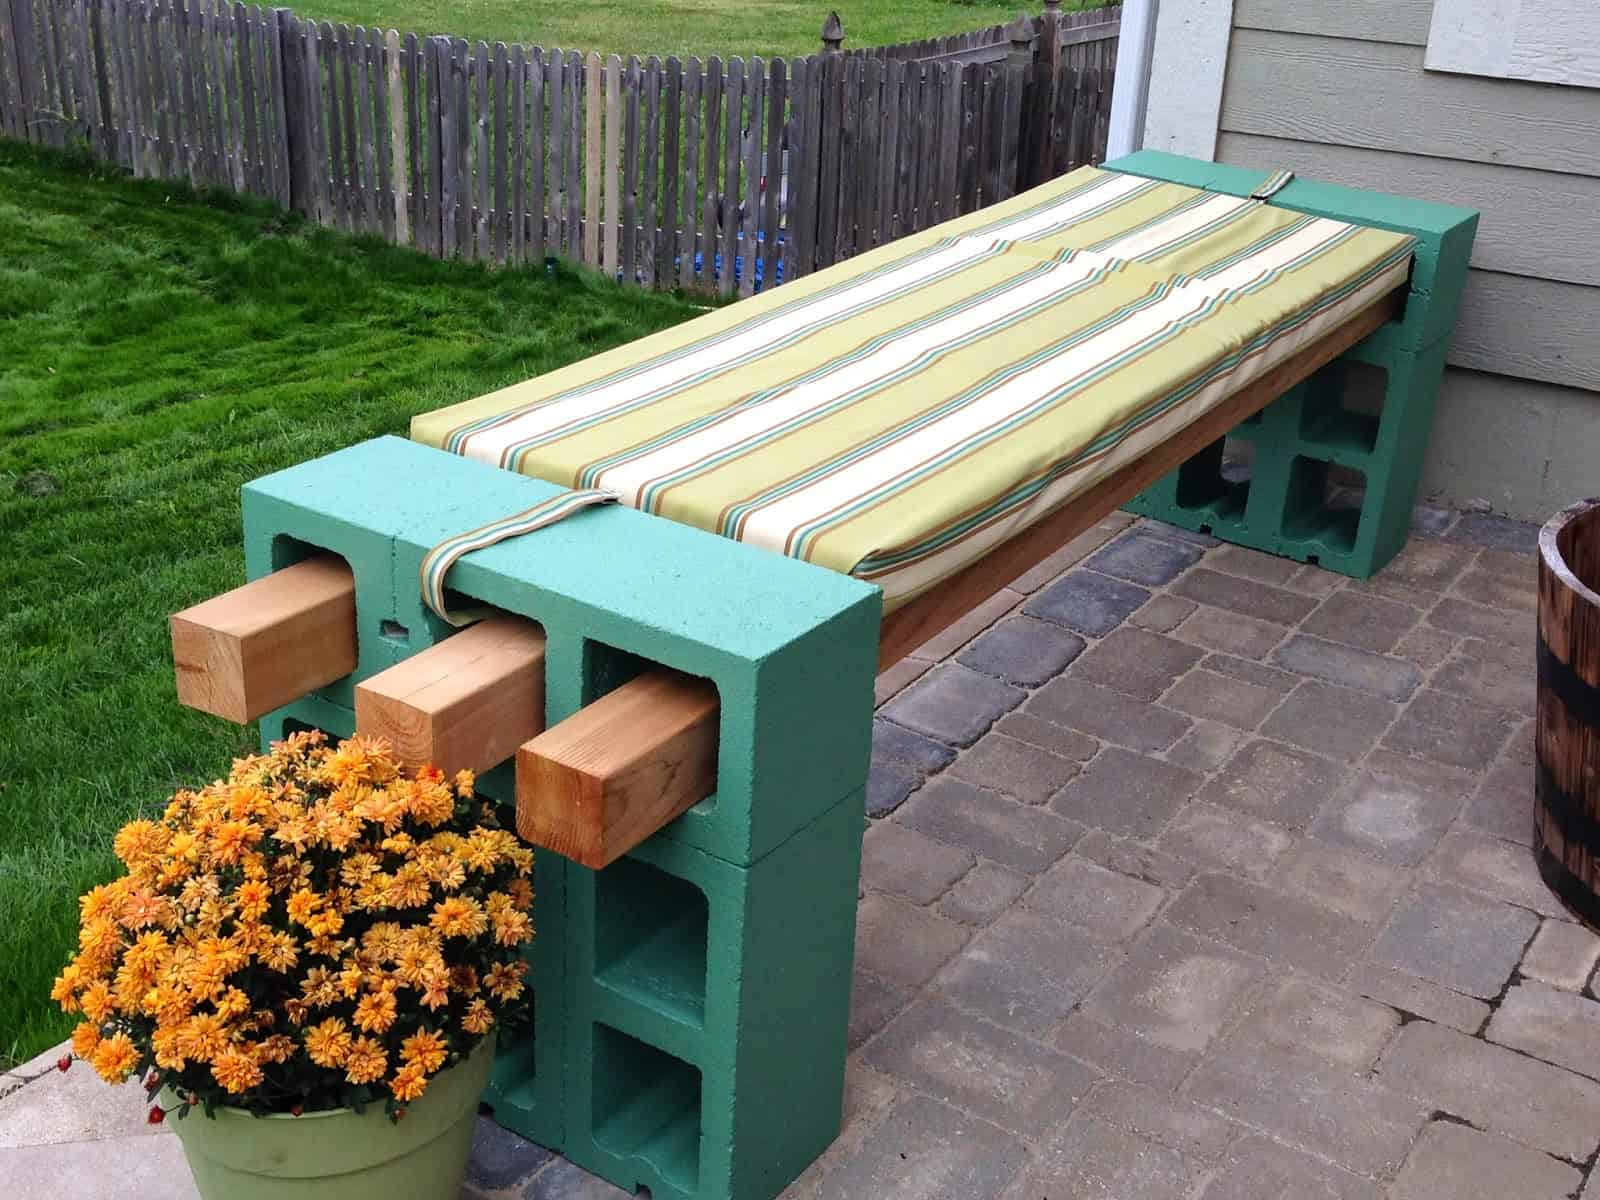 Design Gartenbank 20 Smart Garden Bench Designs That Will Enhance Your Backyard